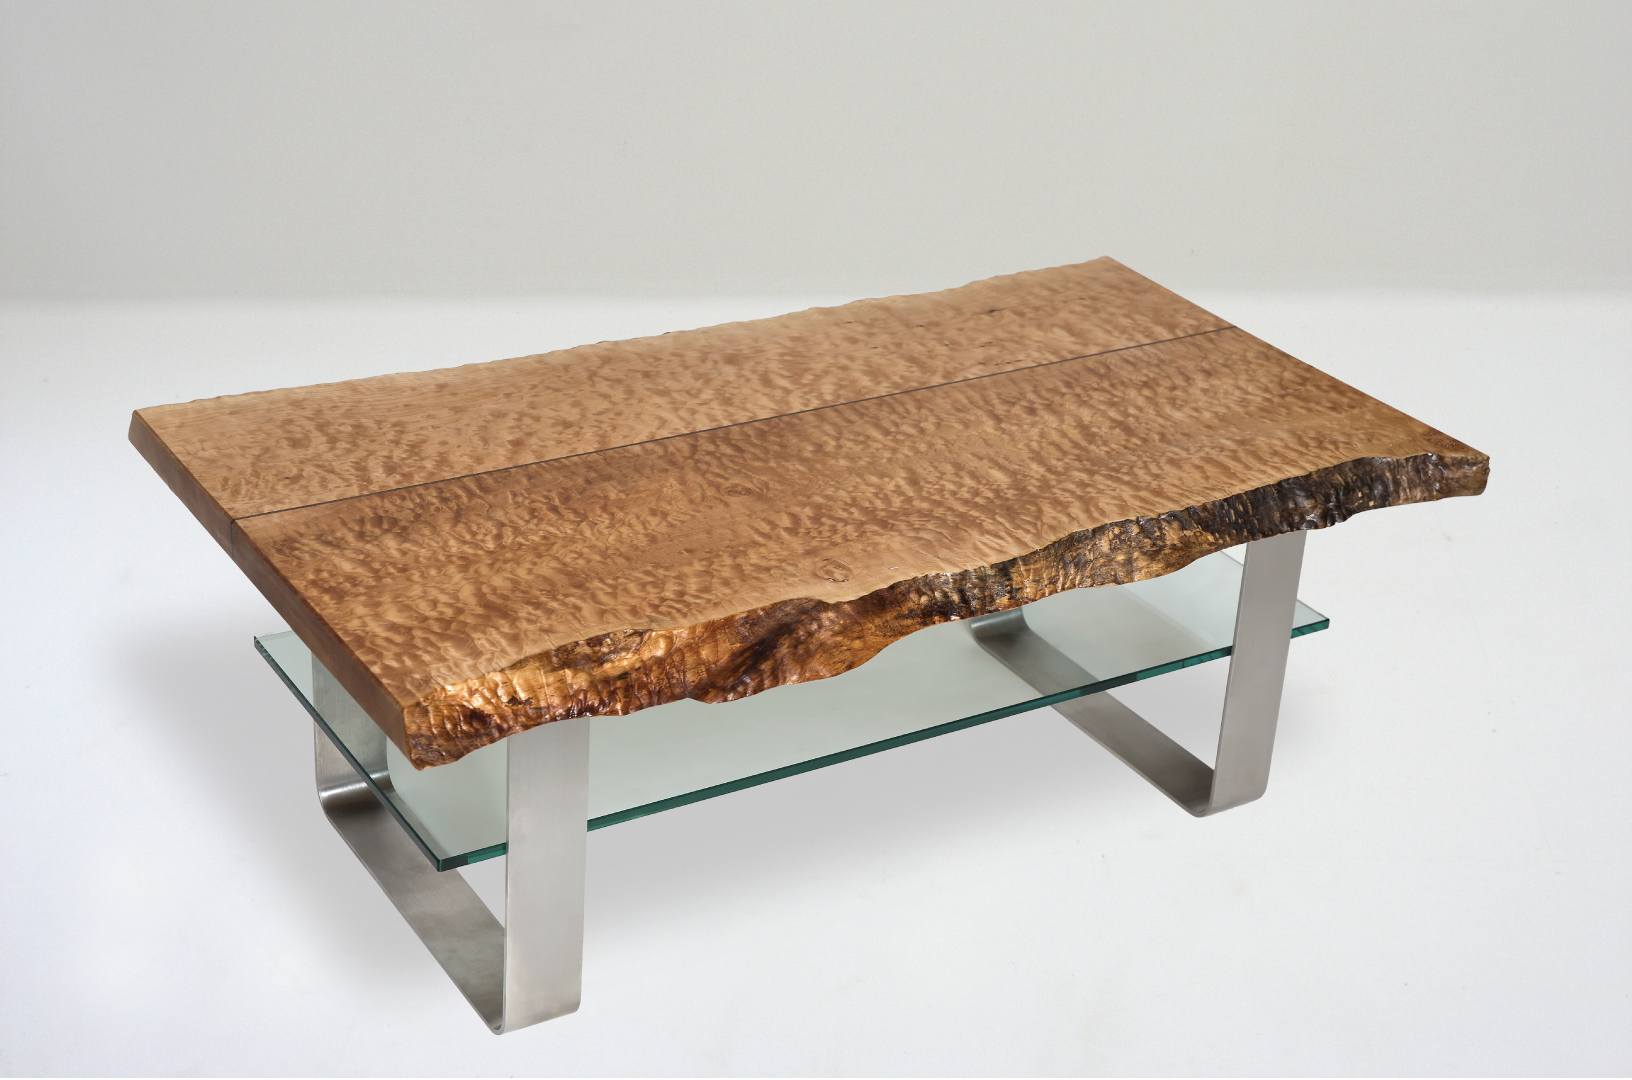 Mapleart Custom Wood Furniture Vancouver Bccoffee Tables Archives